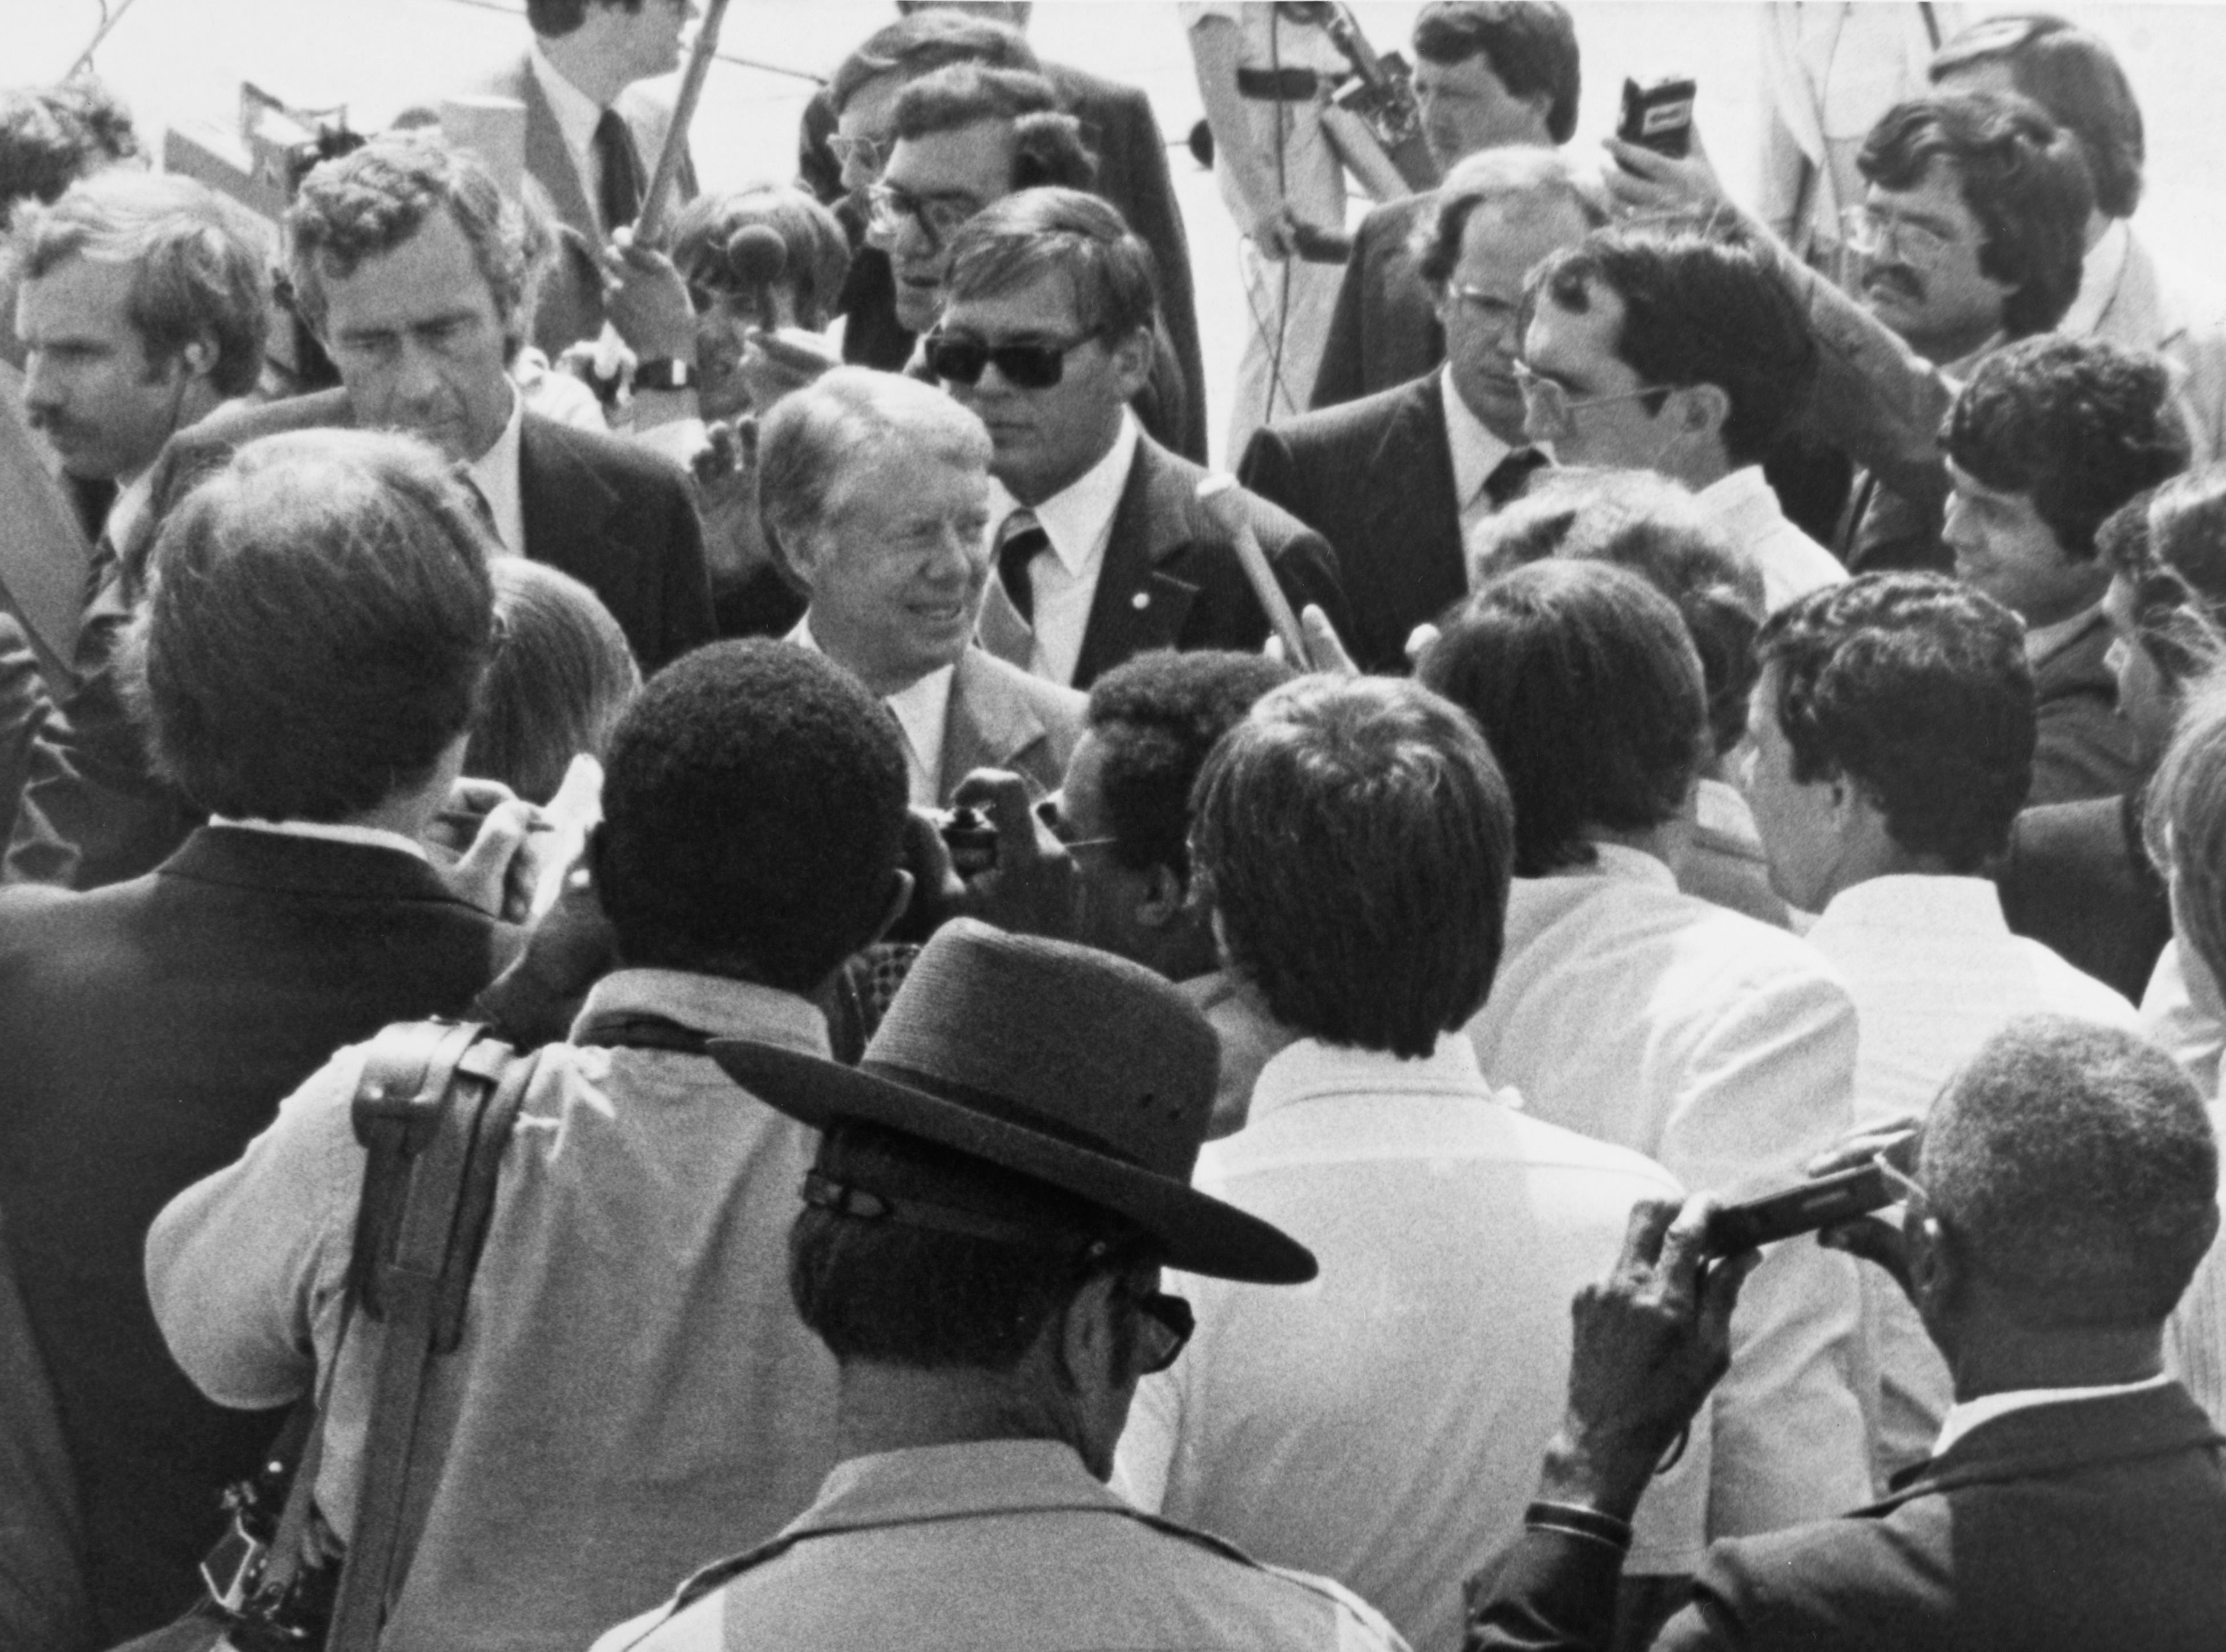 President Jimmy Carter answers questions from reporters prior to boarding Air Force One on May 22, 1978, at McGhee Tyson Airport. (News Sentinel Archive)